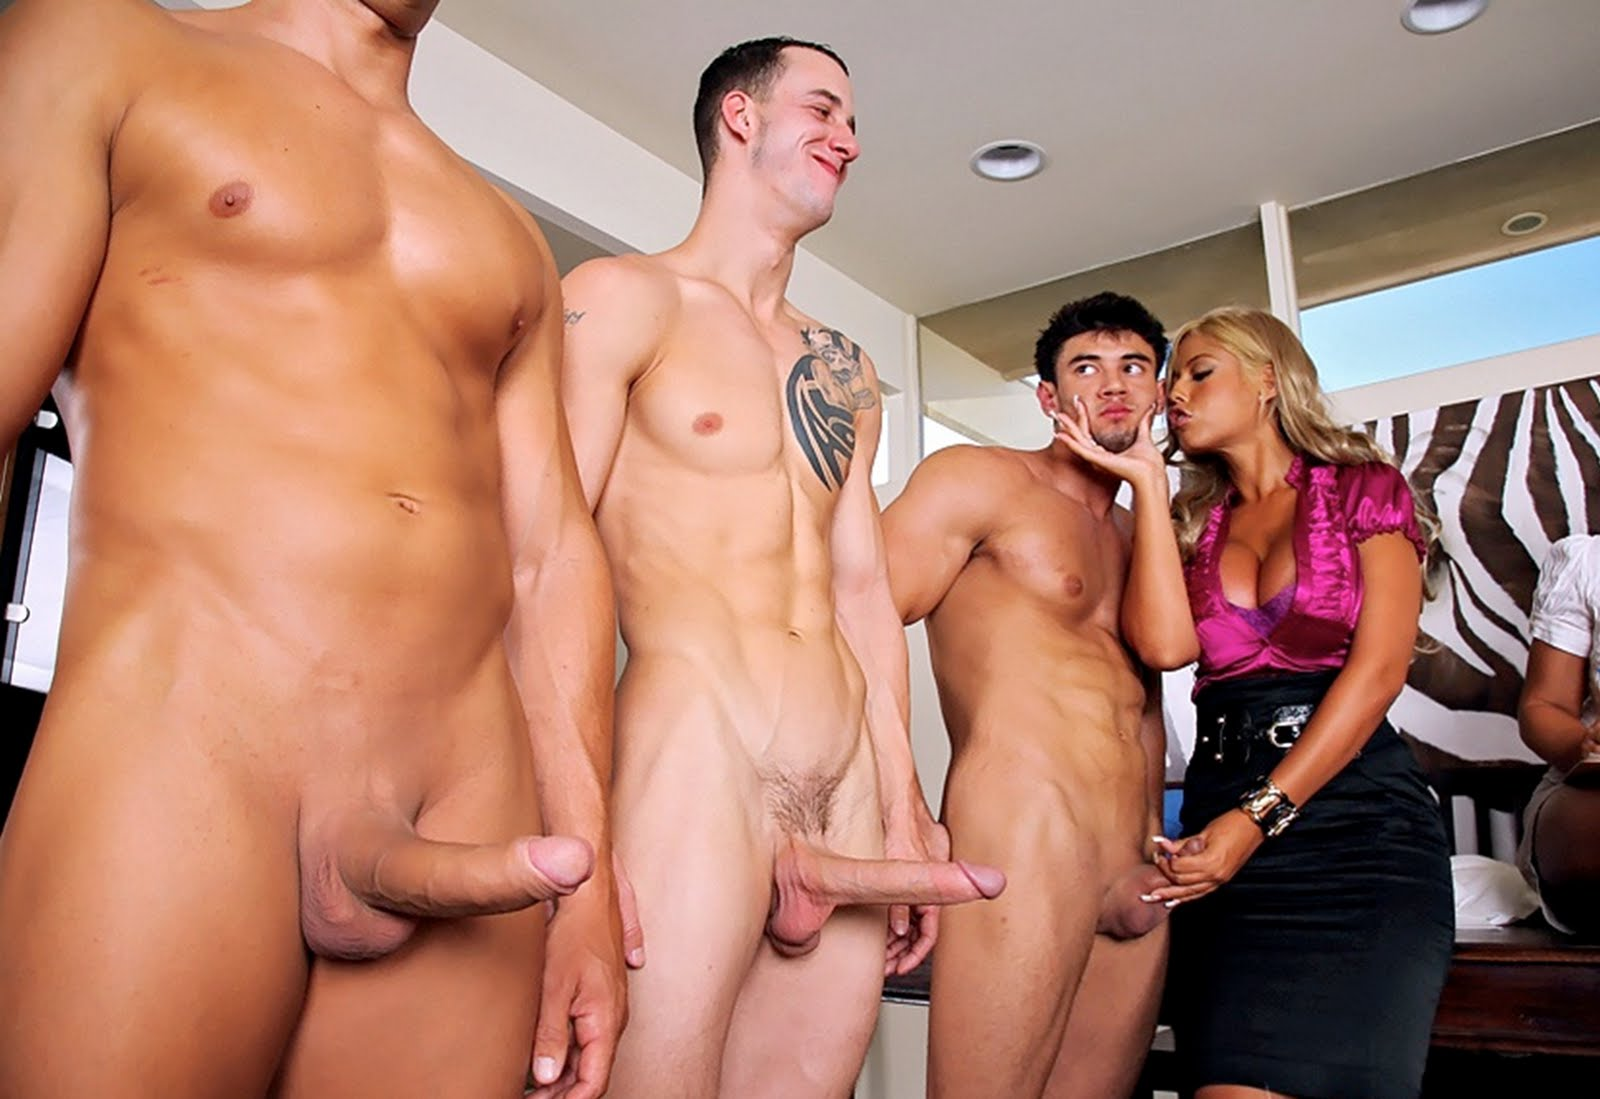 Party girl double team marine part 2 5